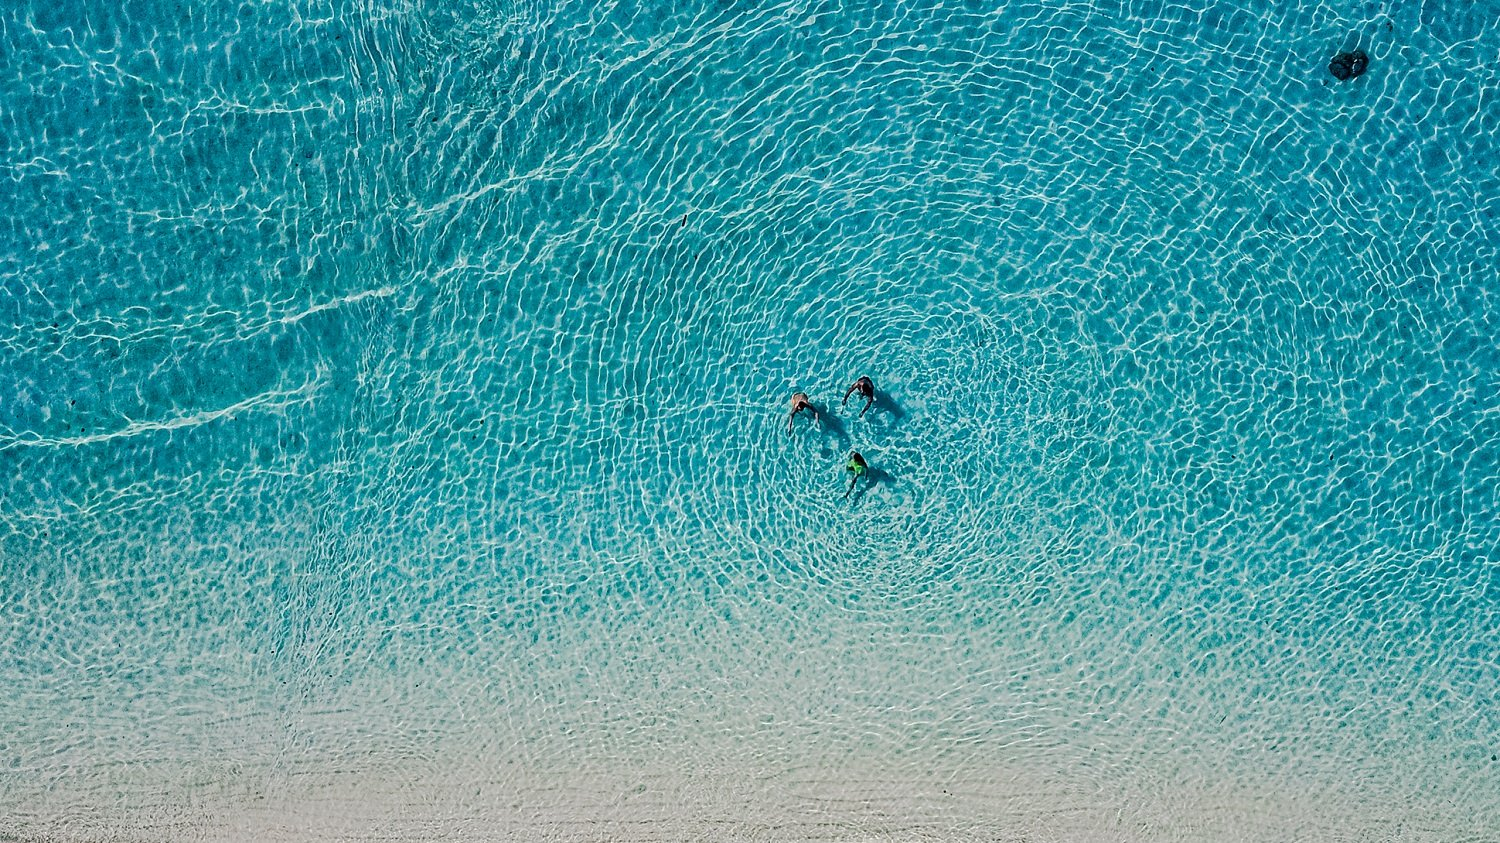 Amazing Photographs Taken by Drones